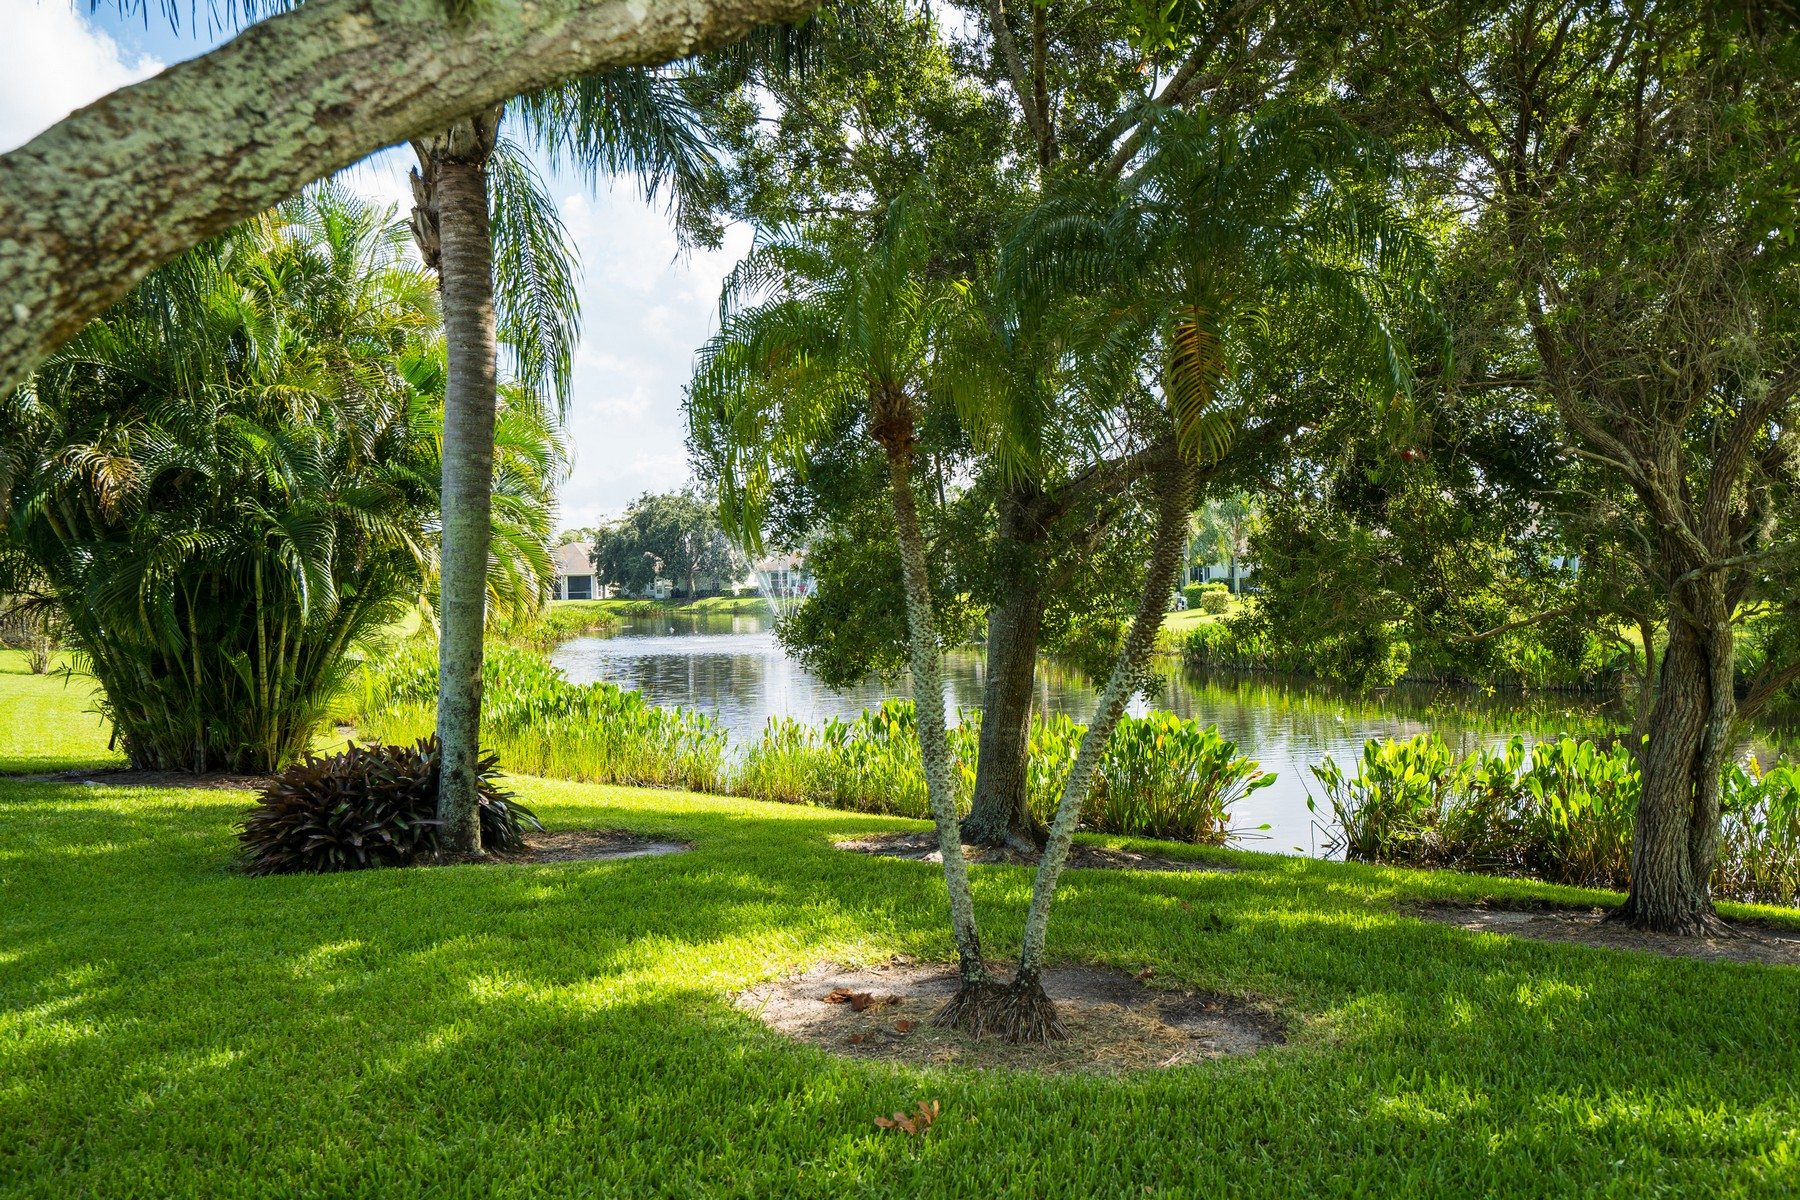 Additional photo for property listing at Lakefront Home in Garden Grove 251 Garden Grove Parkway Vero Beach, Florida 32962 United States